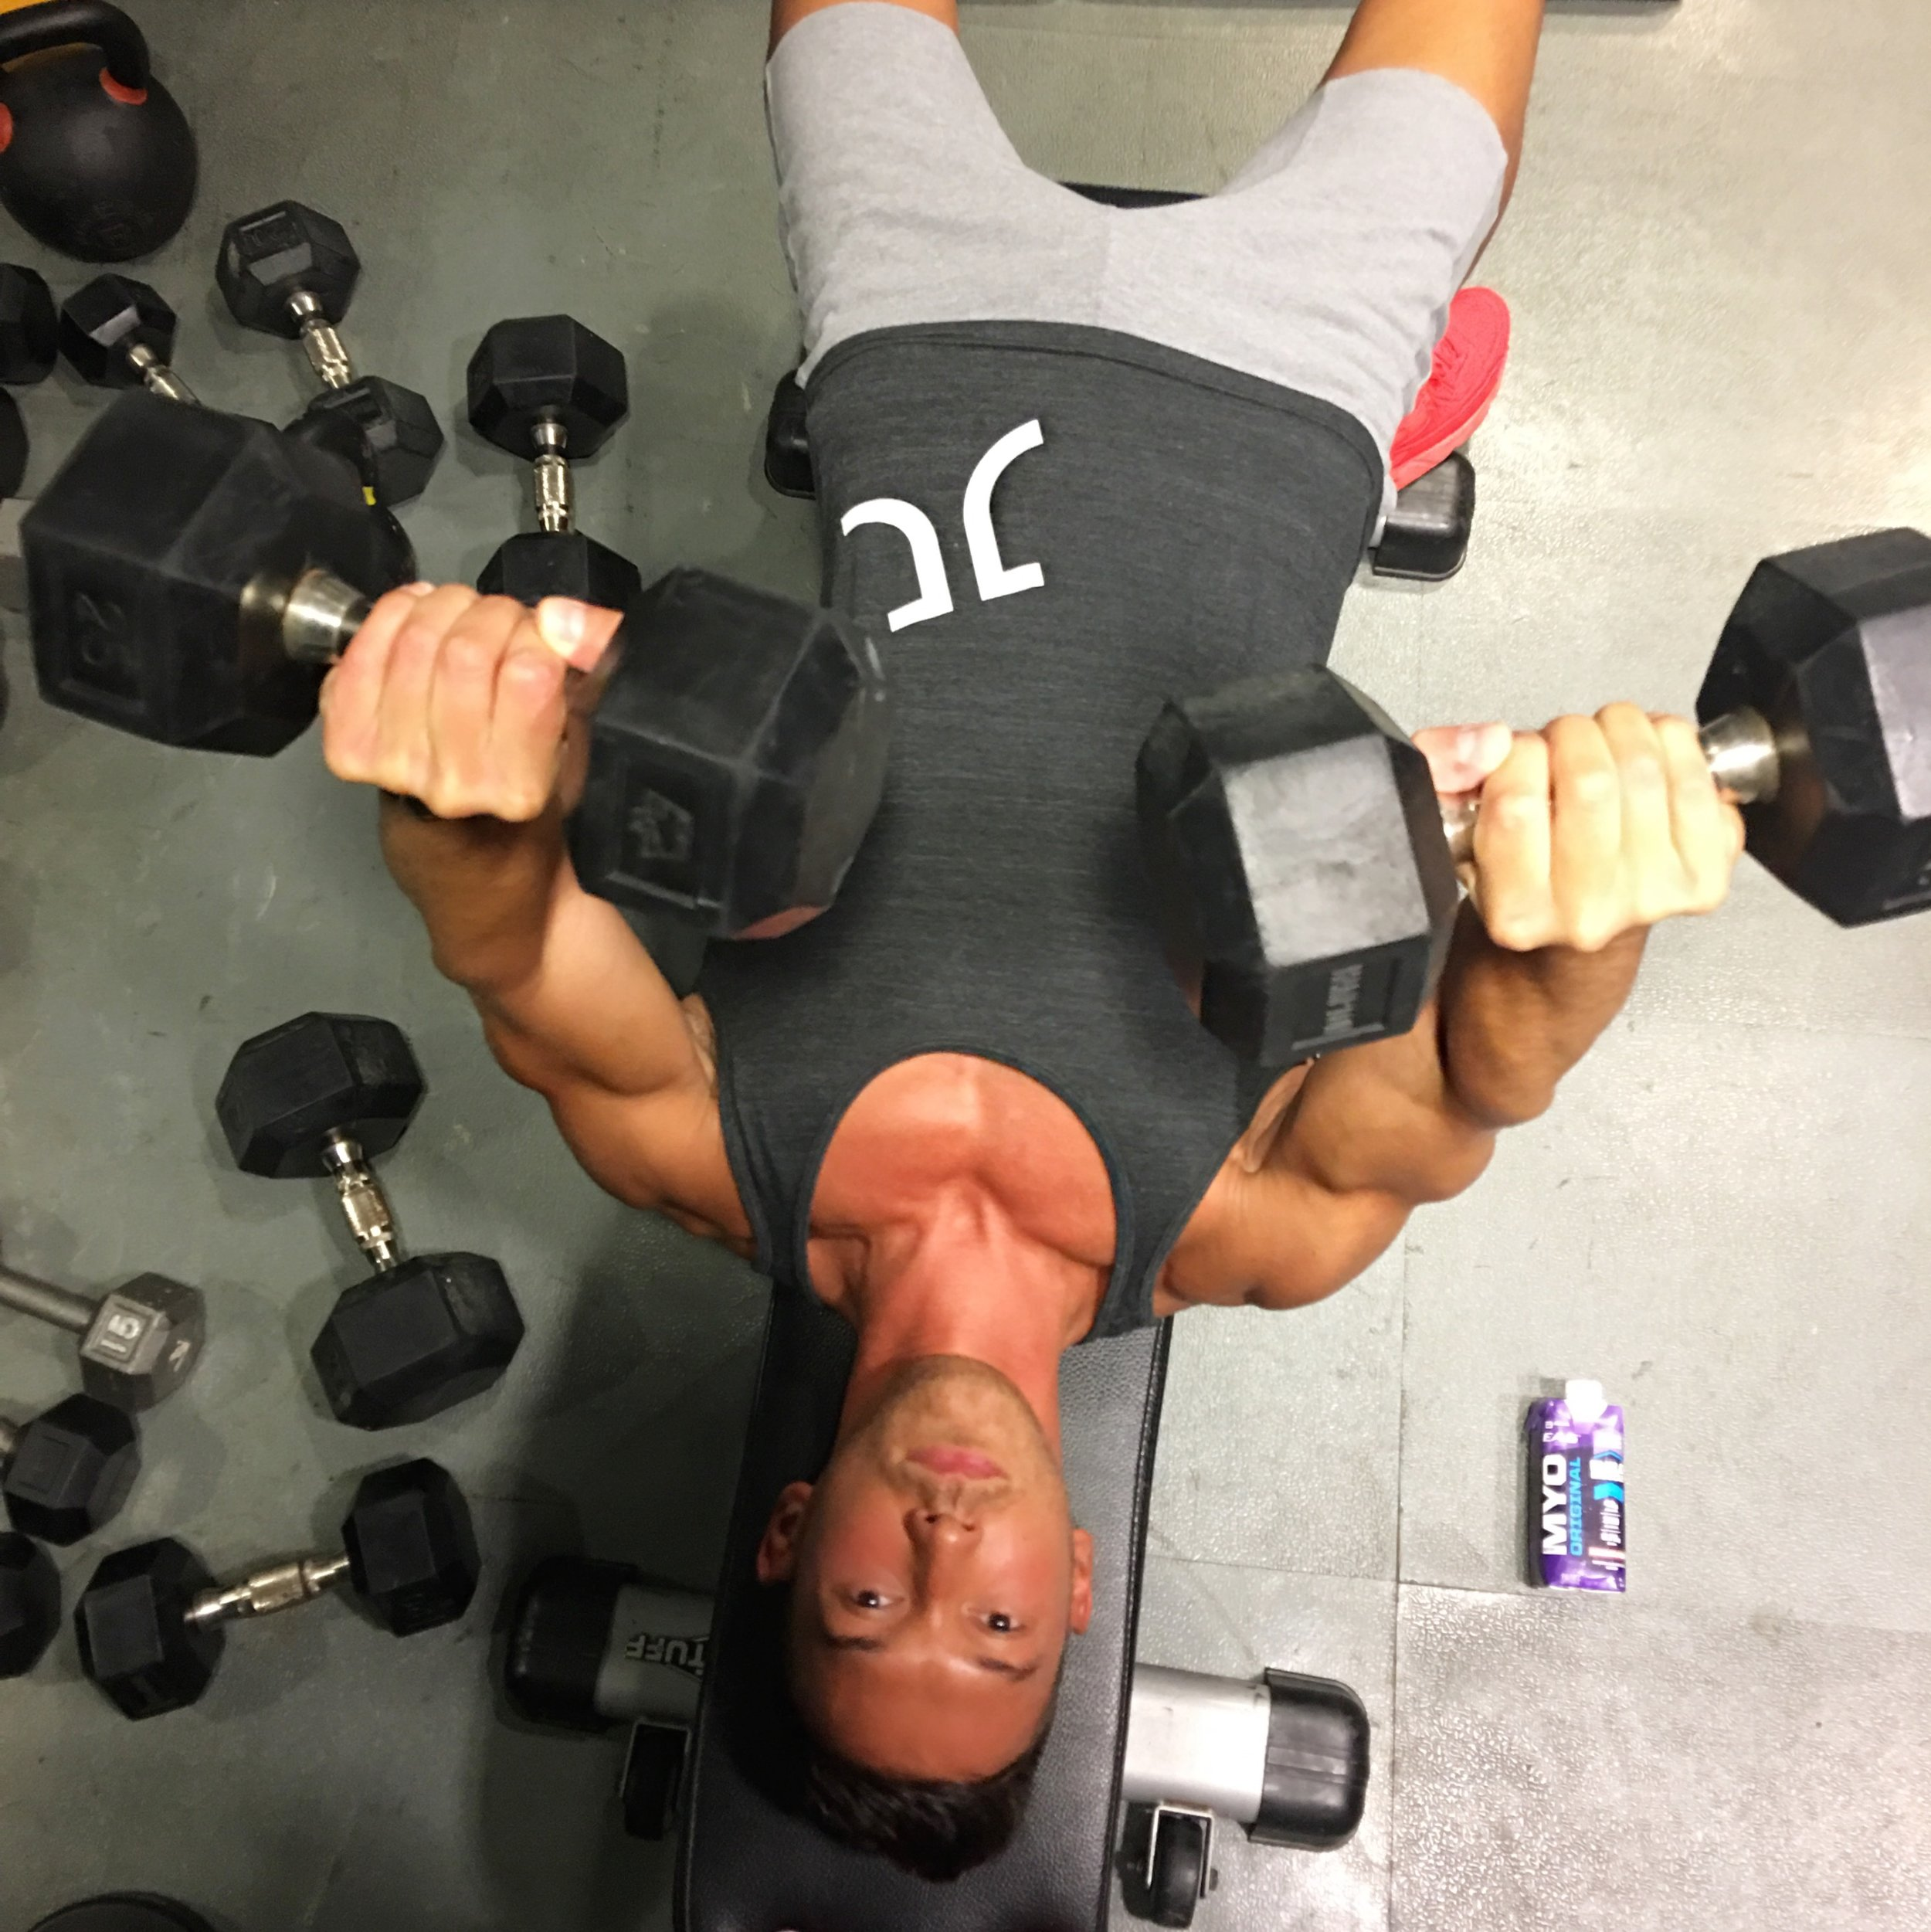 Jason Tran, doing dumbbell chest presses for time (goal:  30+ reps in 60 seconds).